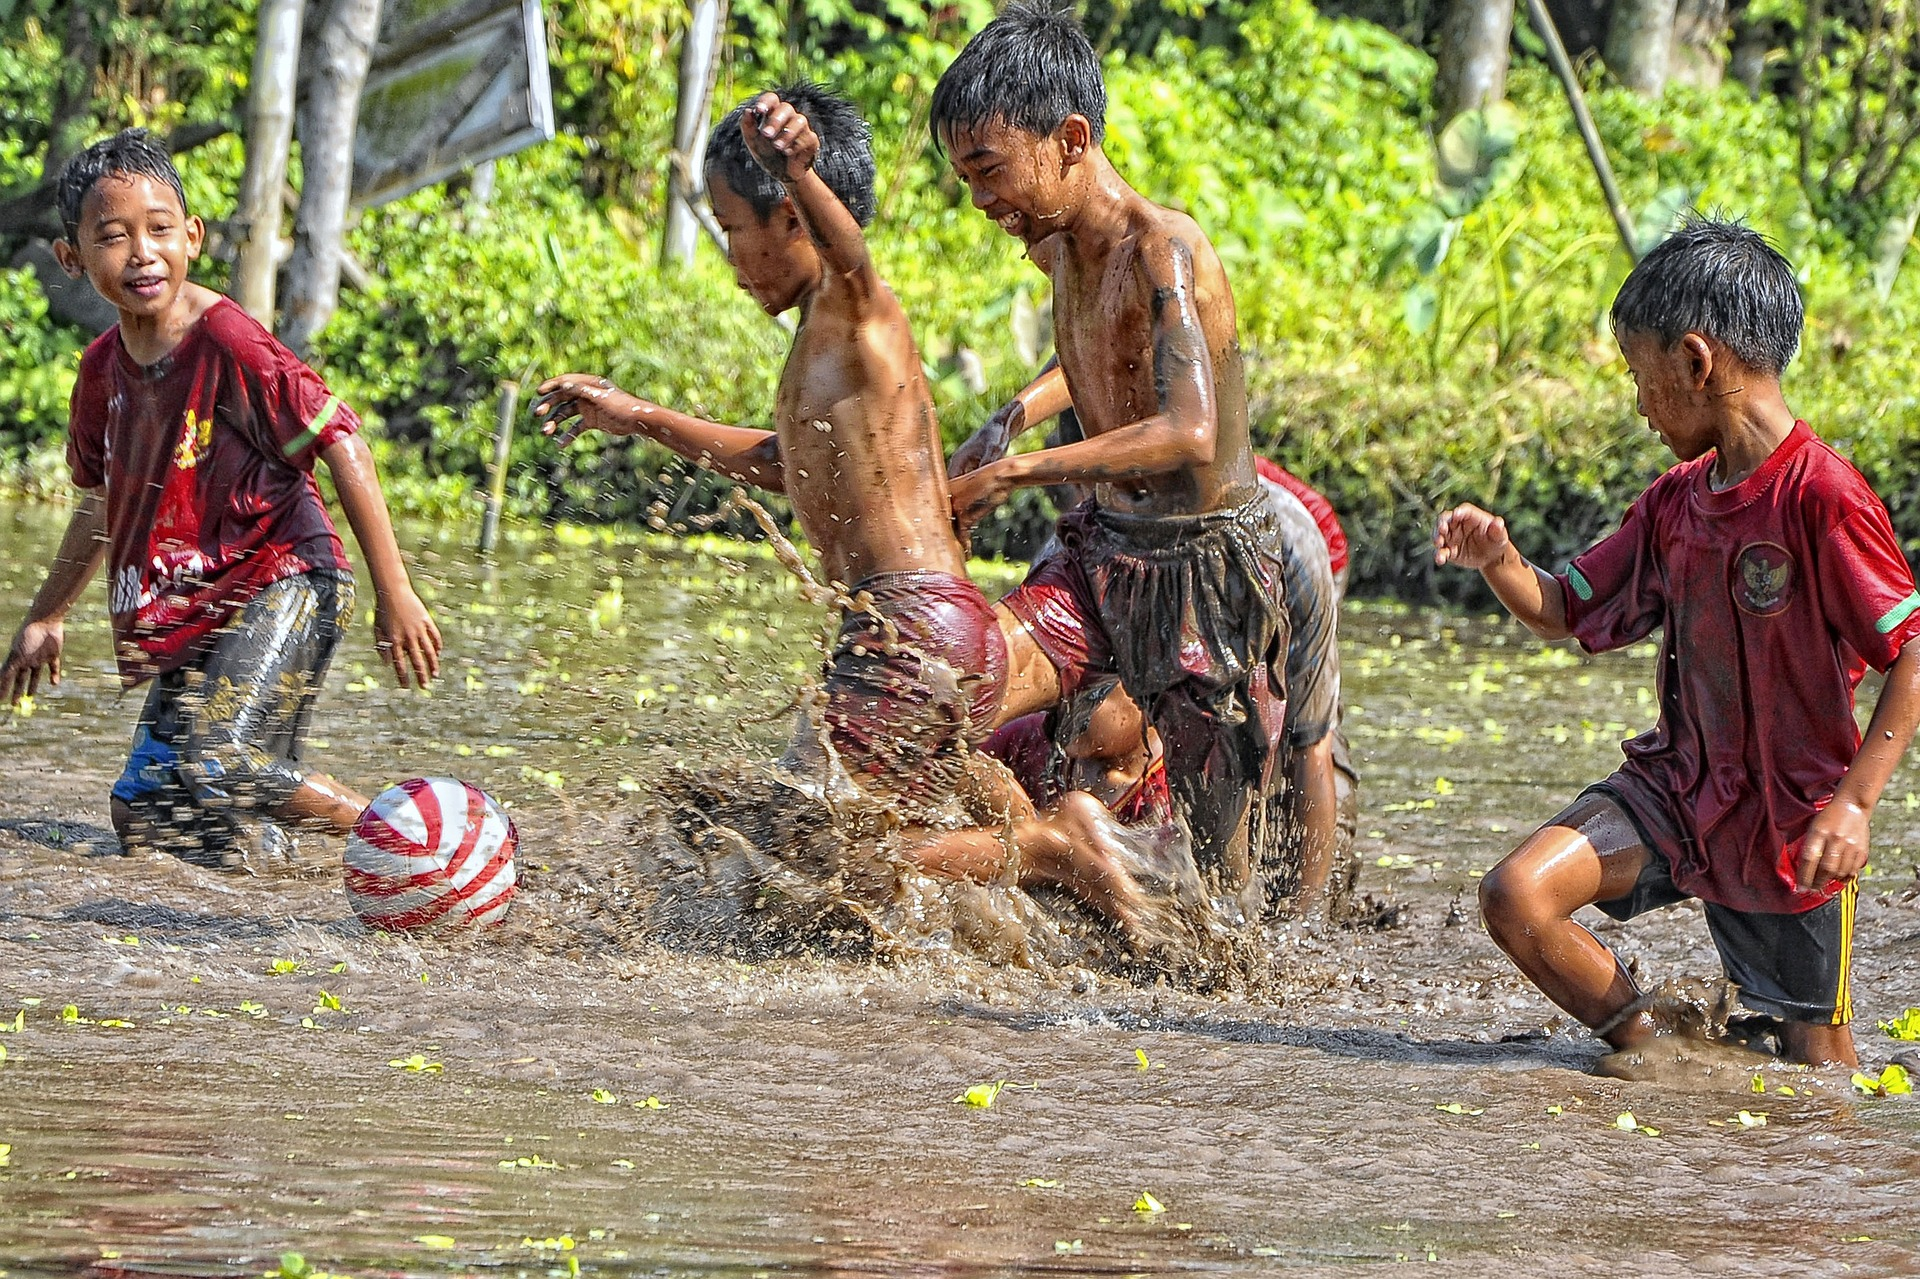 Children playing in Yogyakarta